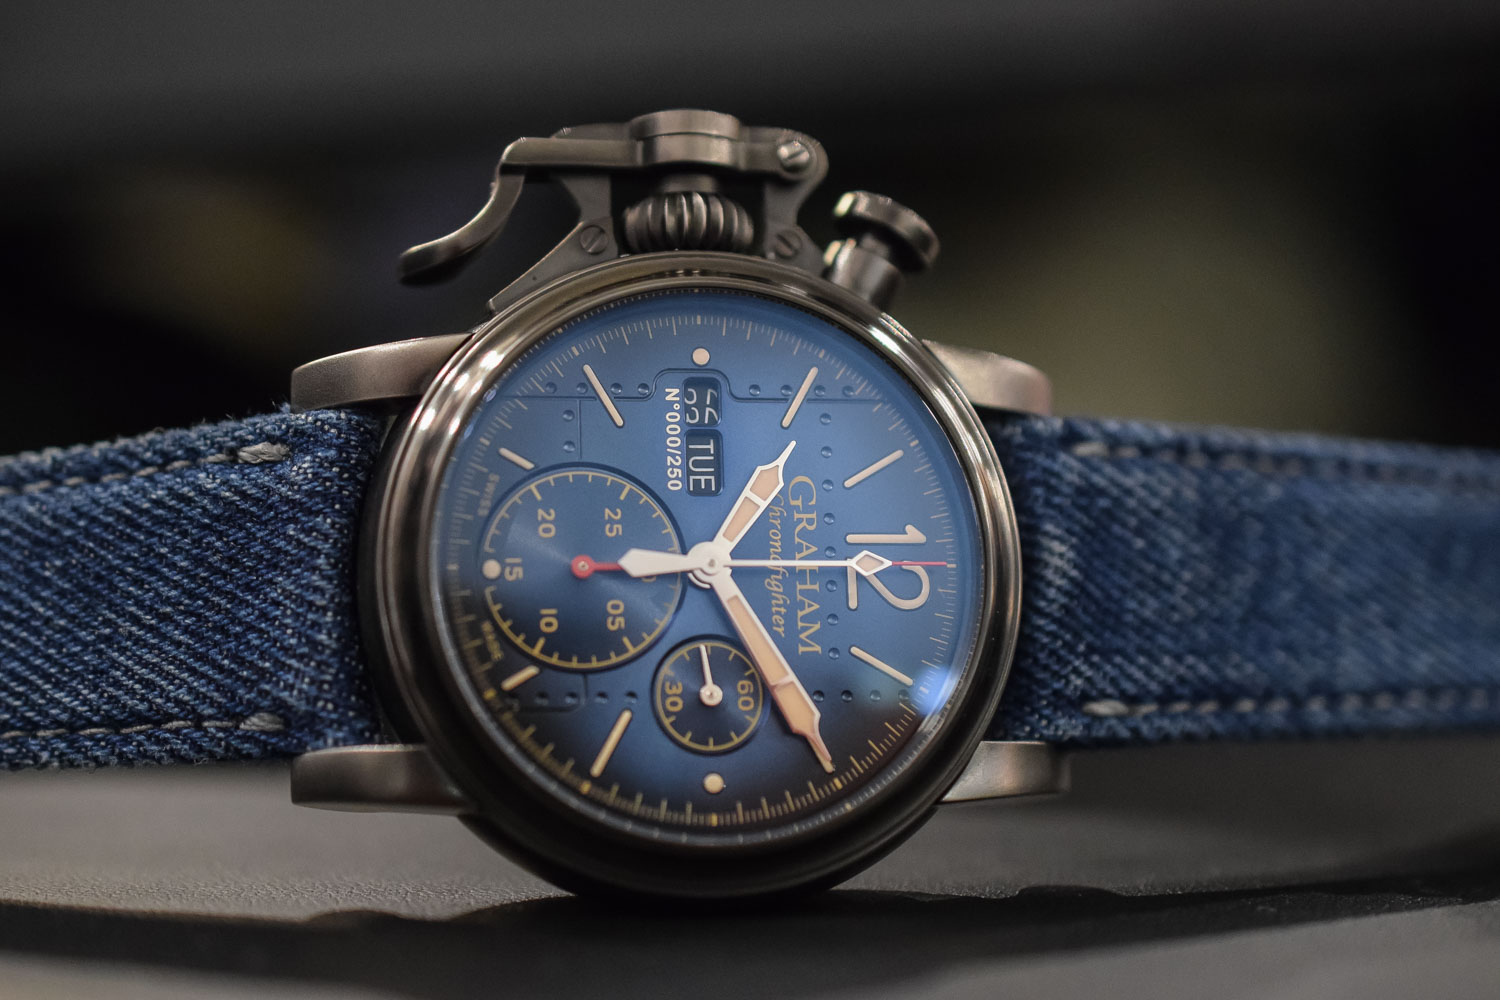 Graham Chronofighter Vintage Aircraft Ltd - Baselworld 2017